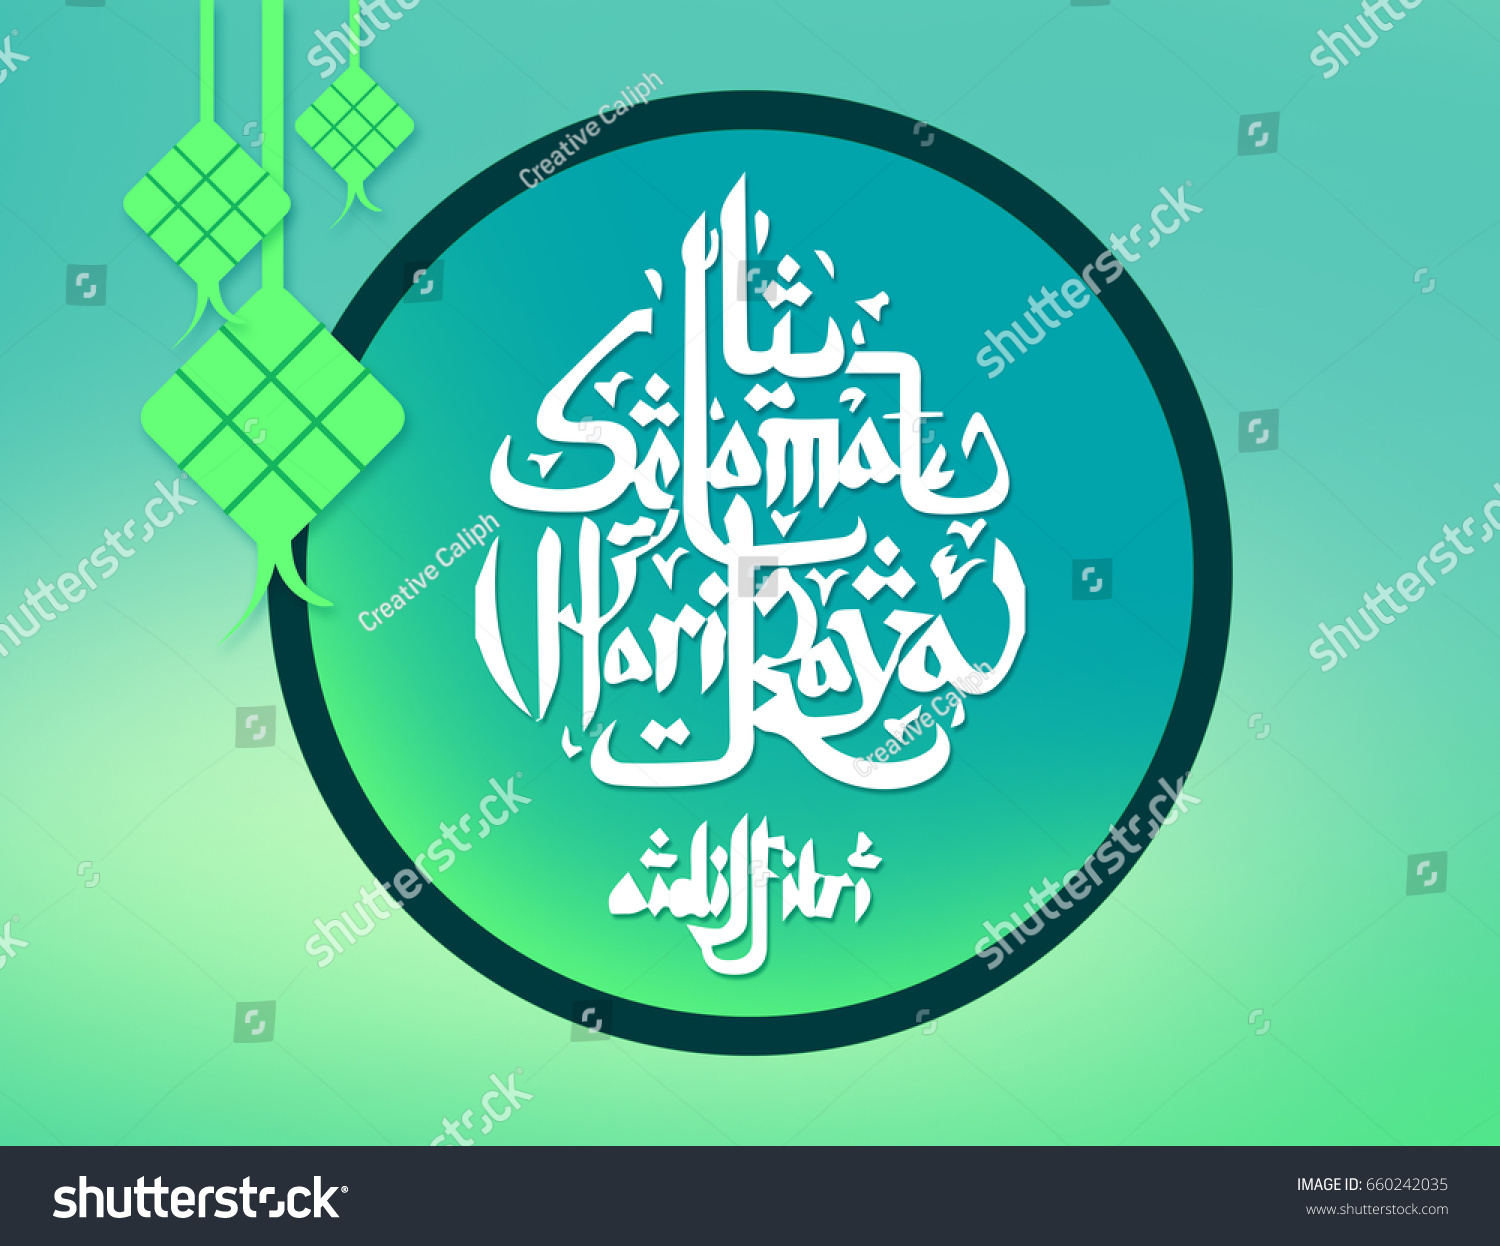 Selamat Hari Raya Aidilfitri Text Greetings Stock Illustration